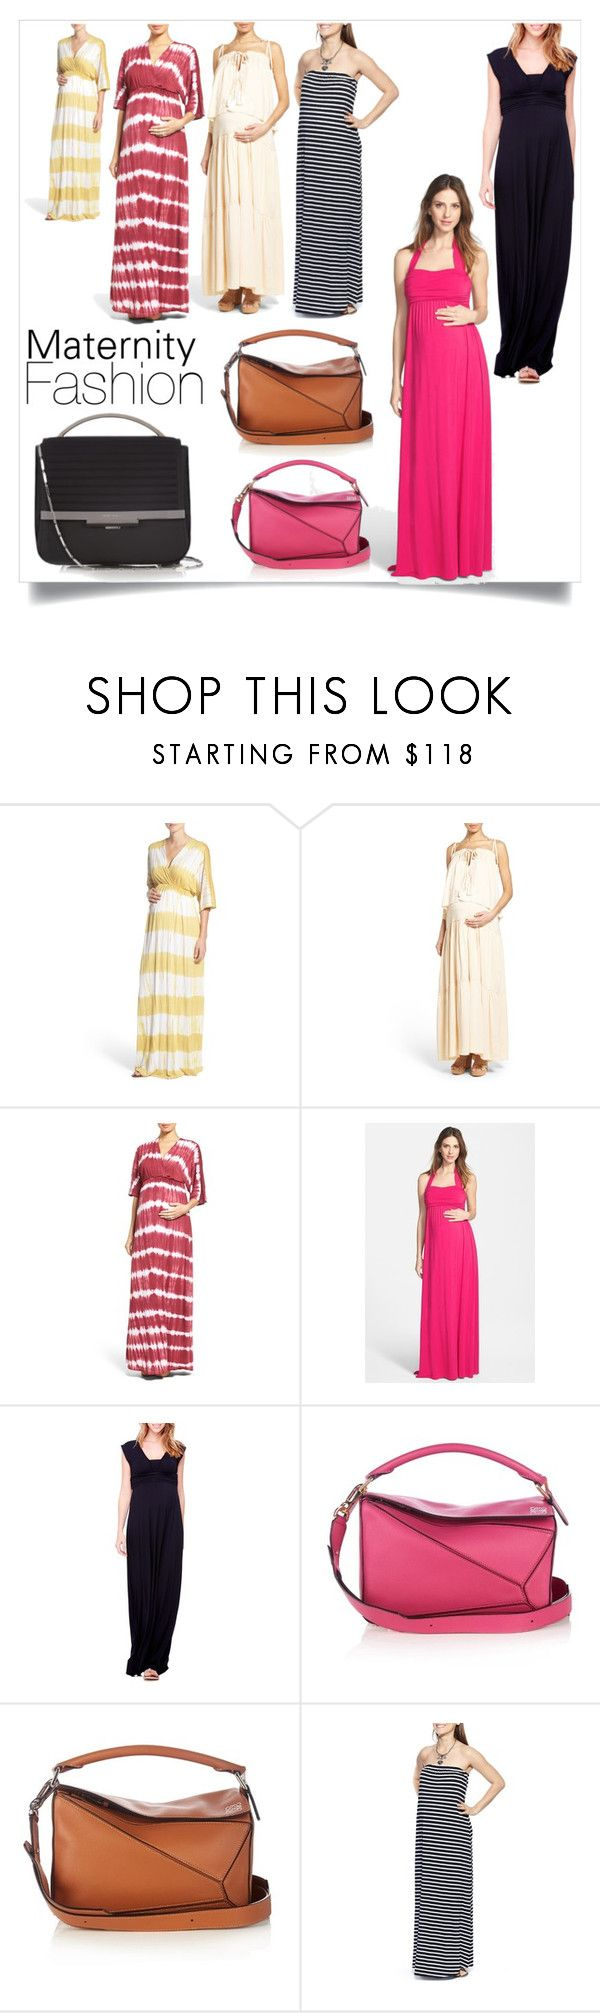 """Maternity Fashion - Maxi Dresses"" by bonnielindsay on Polyvore featuring Fillyboo, Ingrid & Isabel, Loewe, Imanimo and Eddie Borgo"